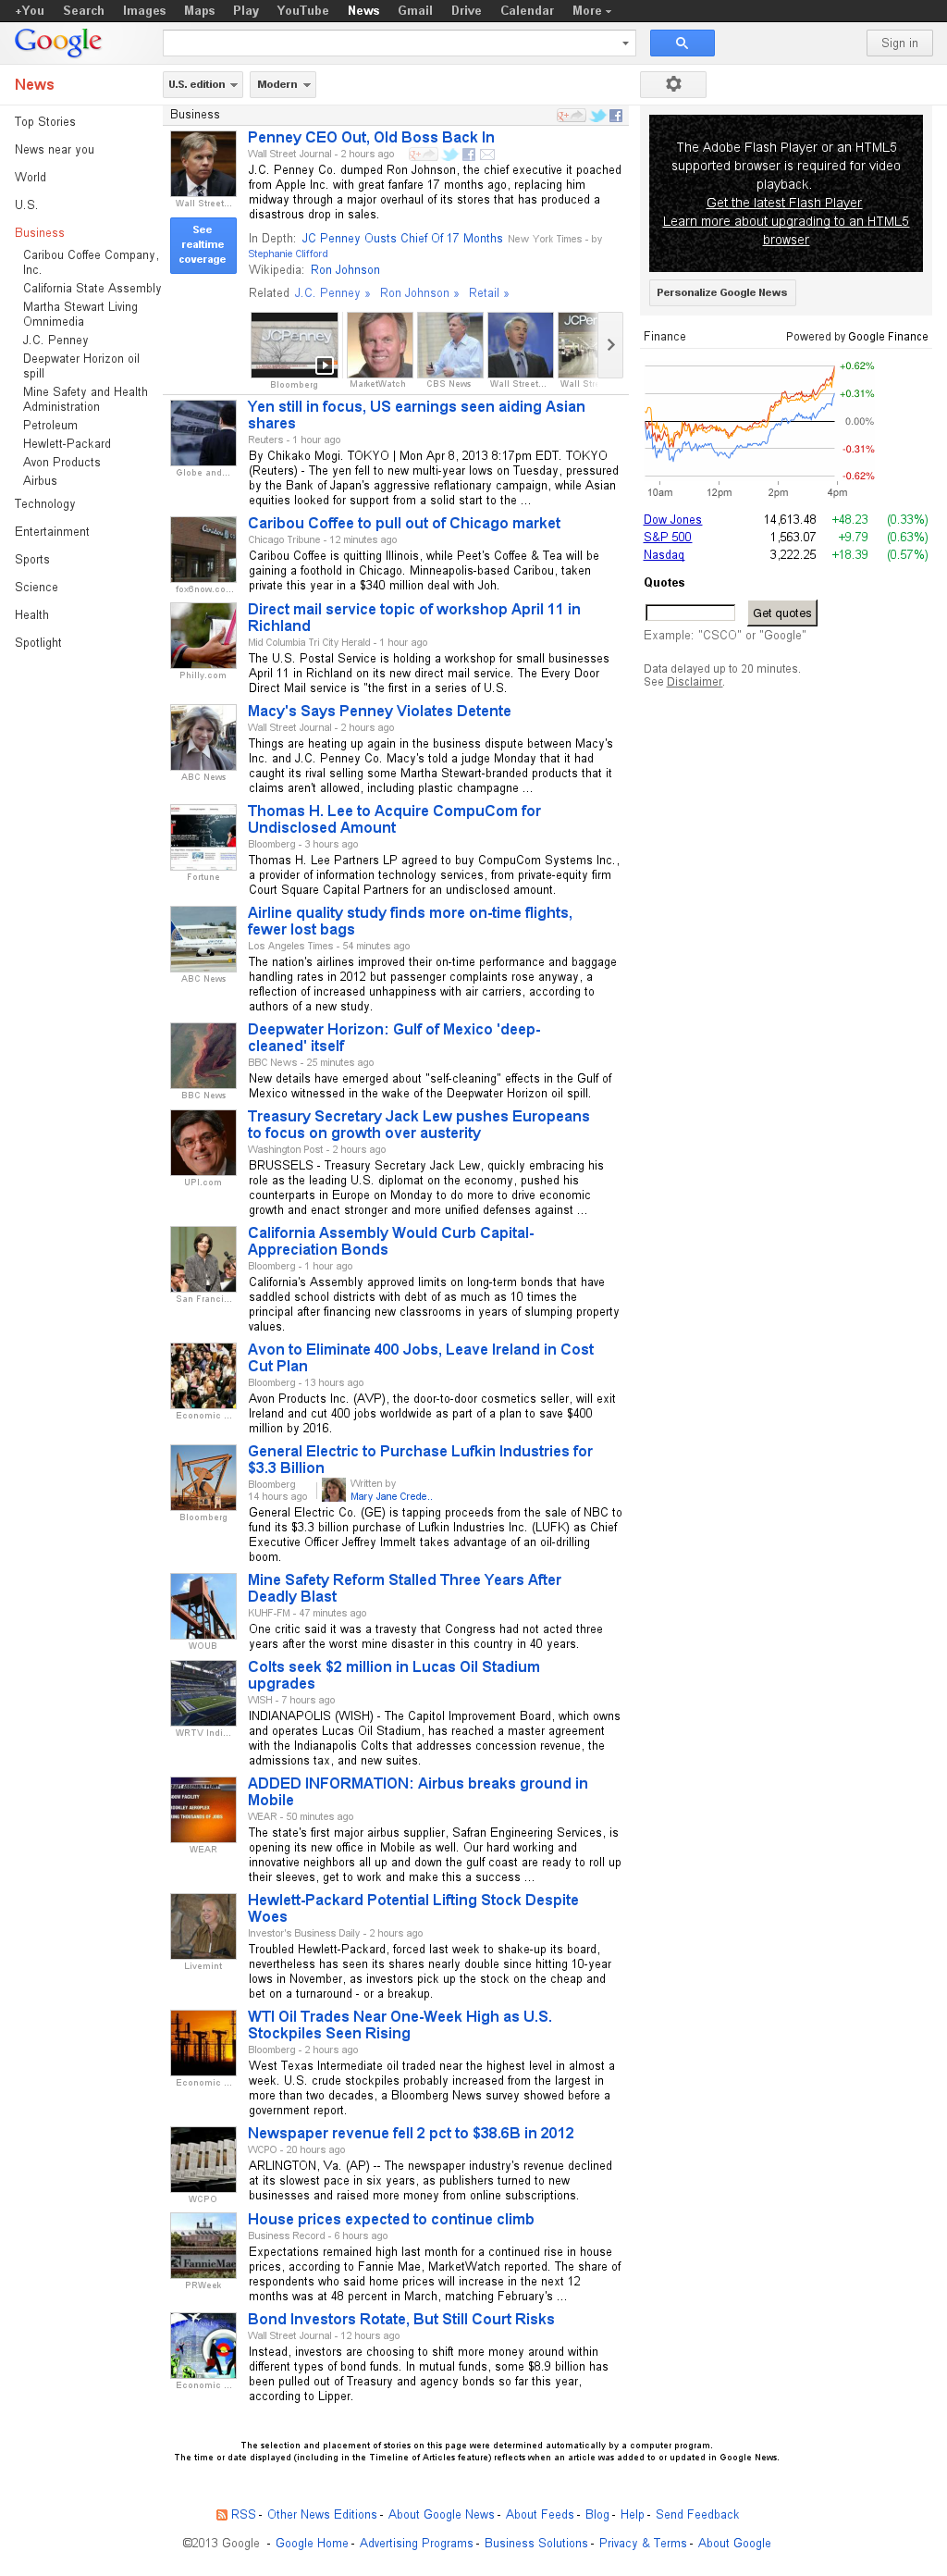 Google News: Business at Tuesday April 9, 2013, 2:08 a.m. UTC